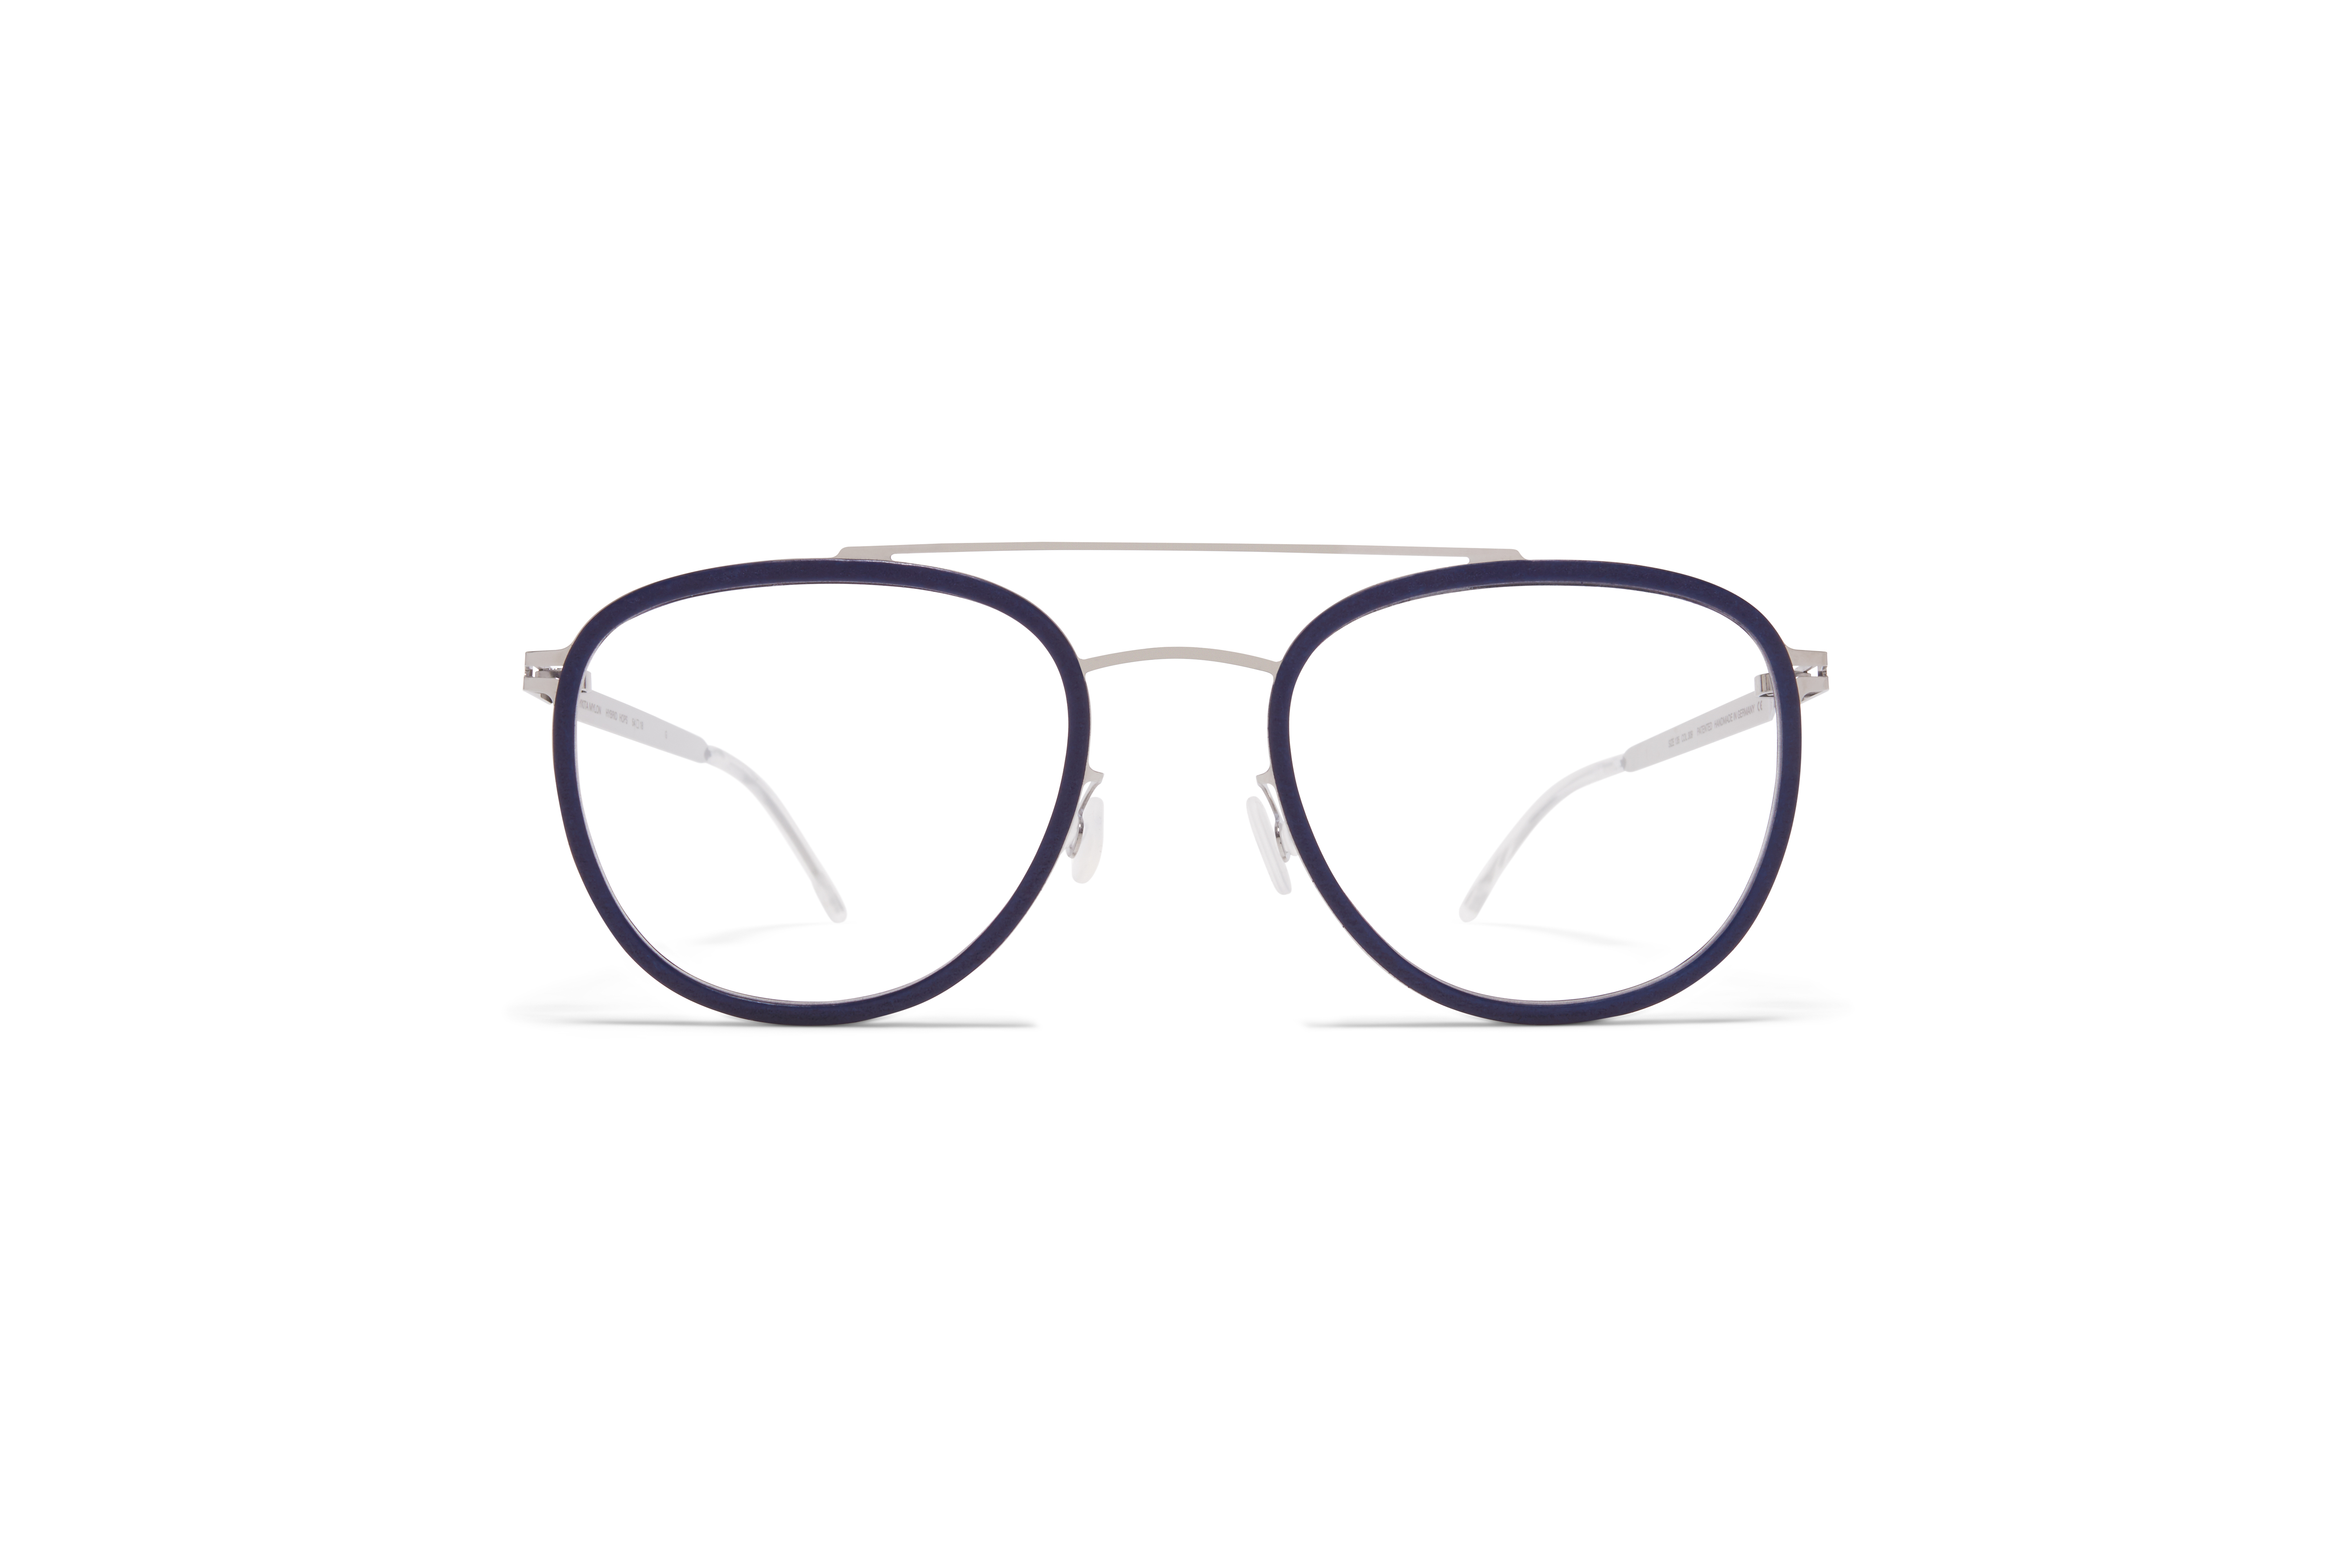 MYKITA MYLON HOPS - OPTICAL FRAME